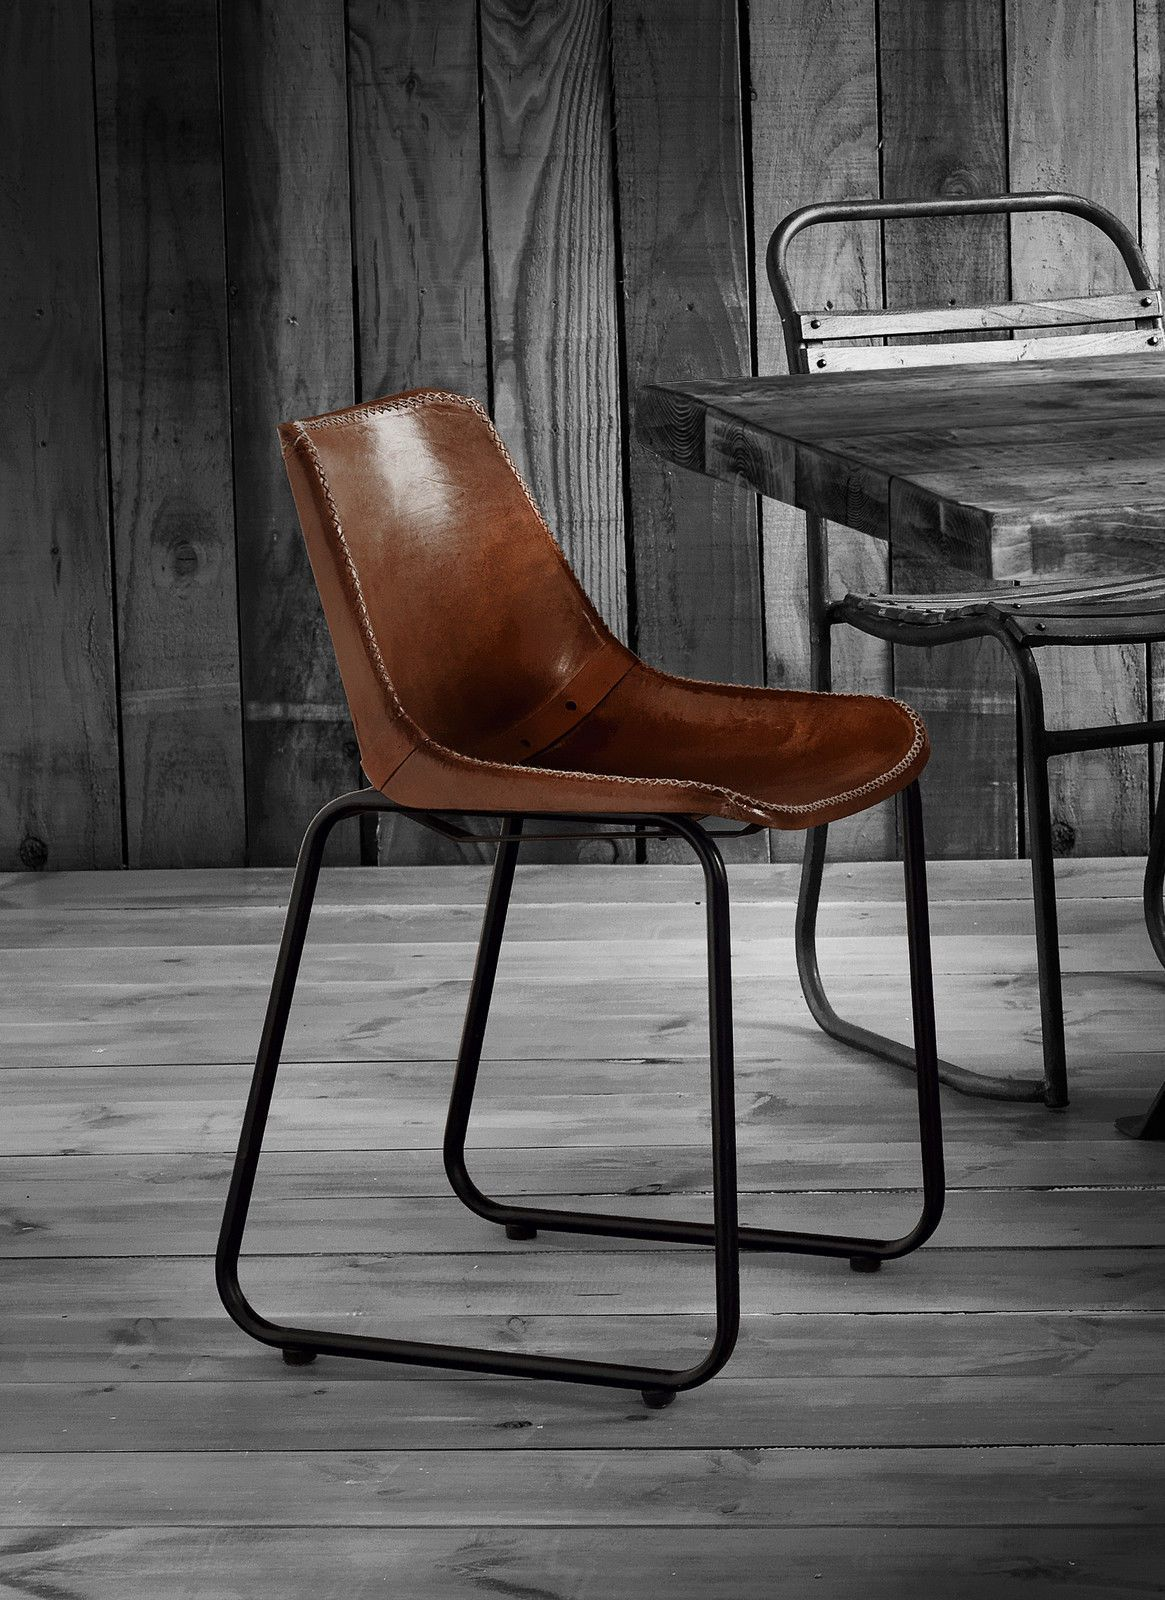 Surprising Vintage Industrial Antiqued Retro Leather Dining Chairs Andrewgaddart Wooden Chair Designs For Living Room Andrewgaddartcom